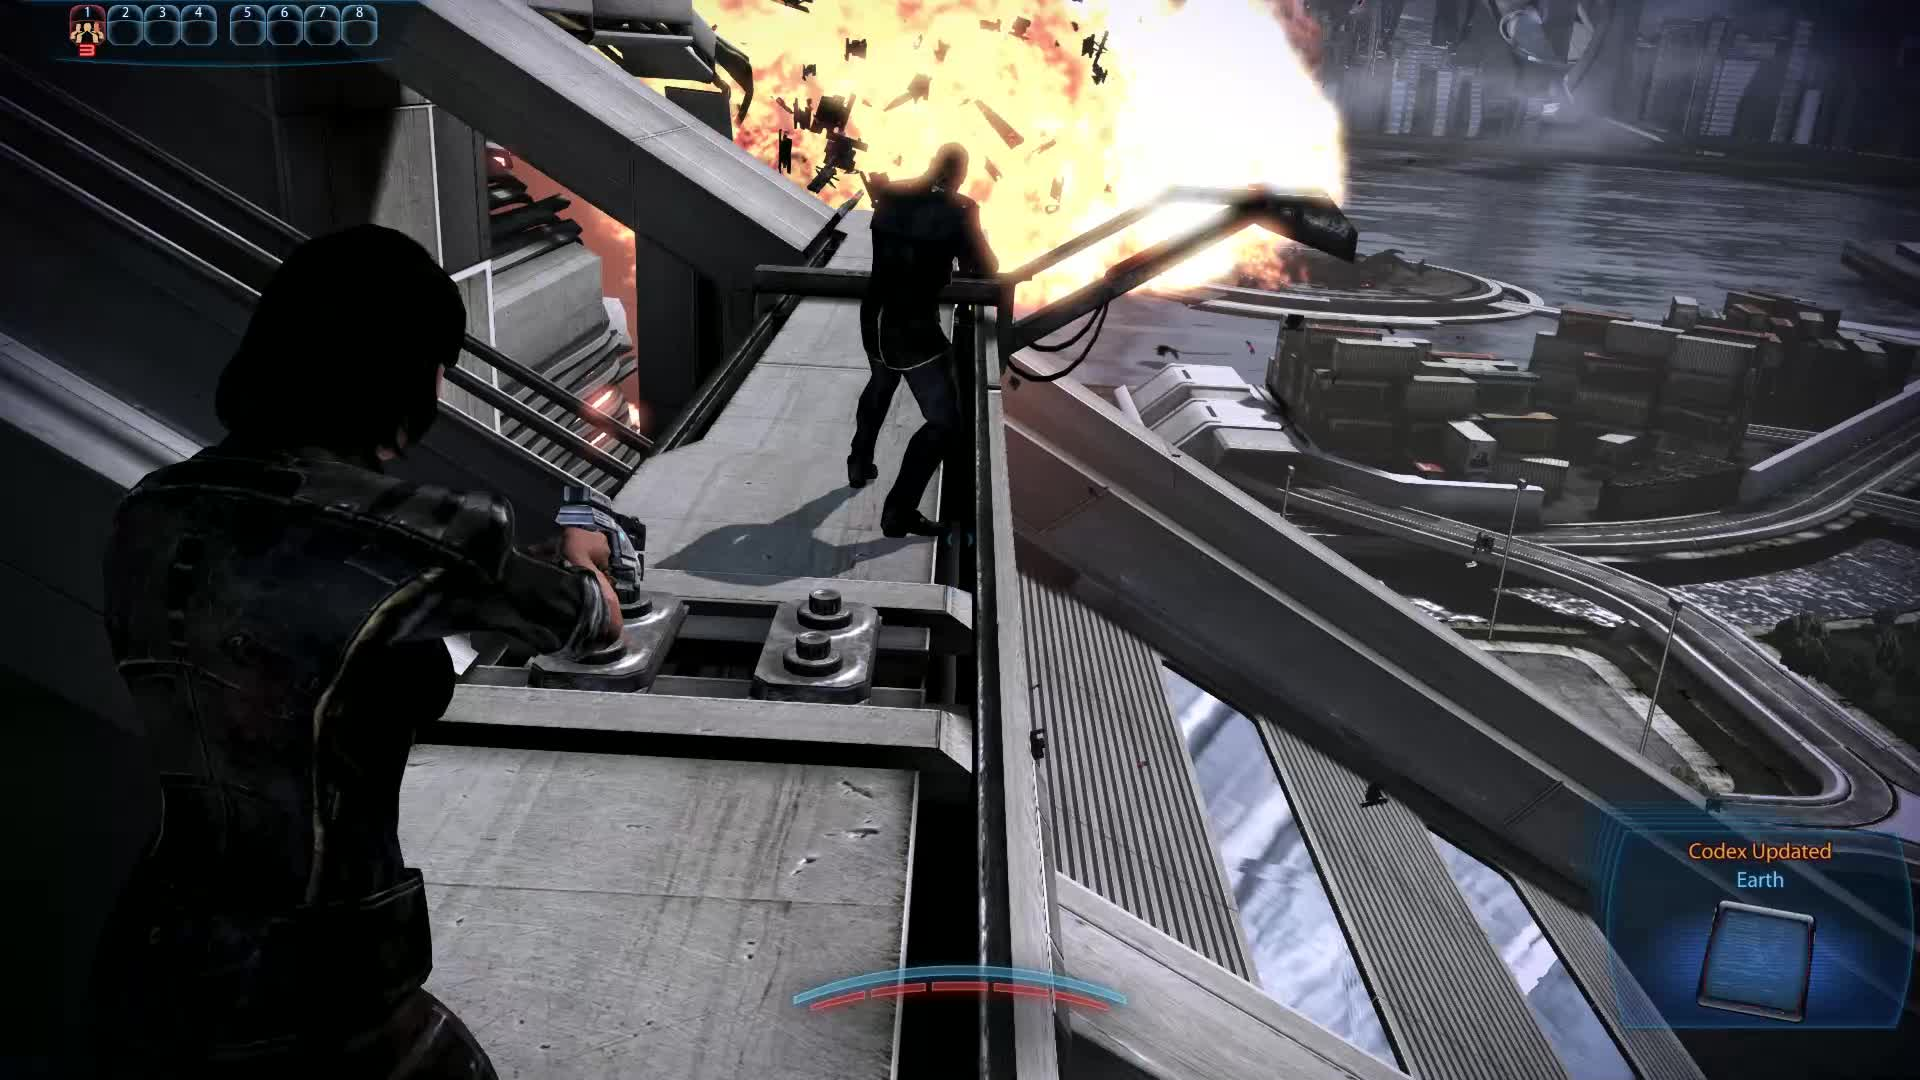 mass effect 3, How do we stop these things GIFs